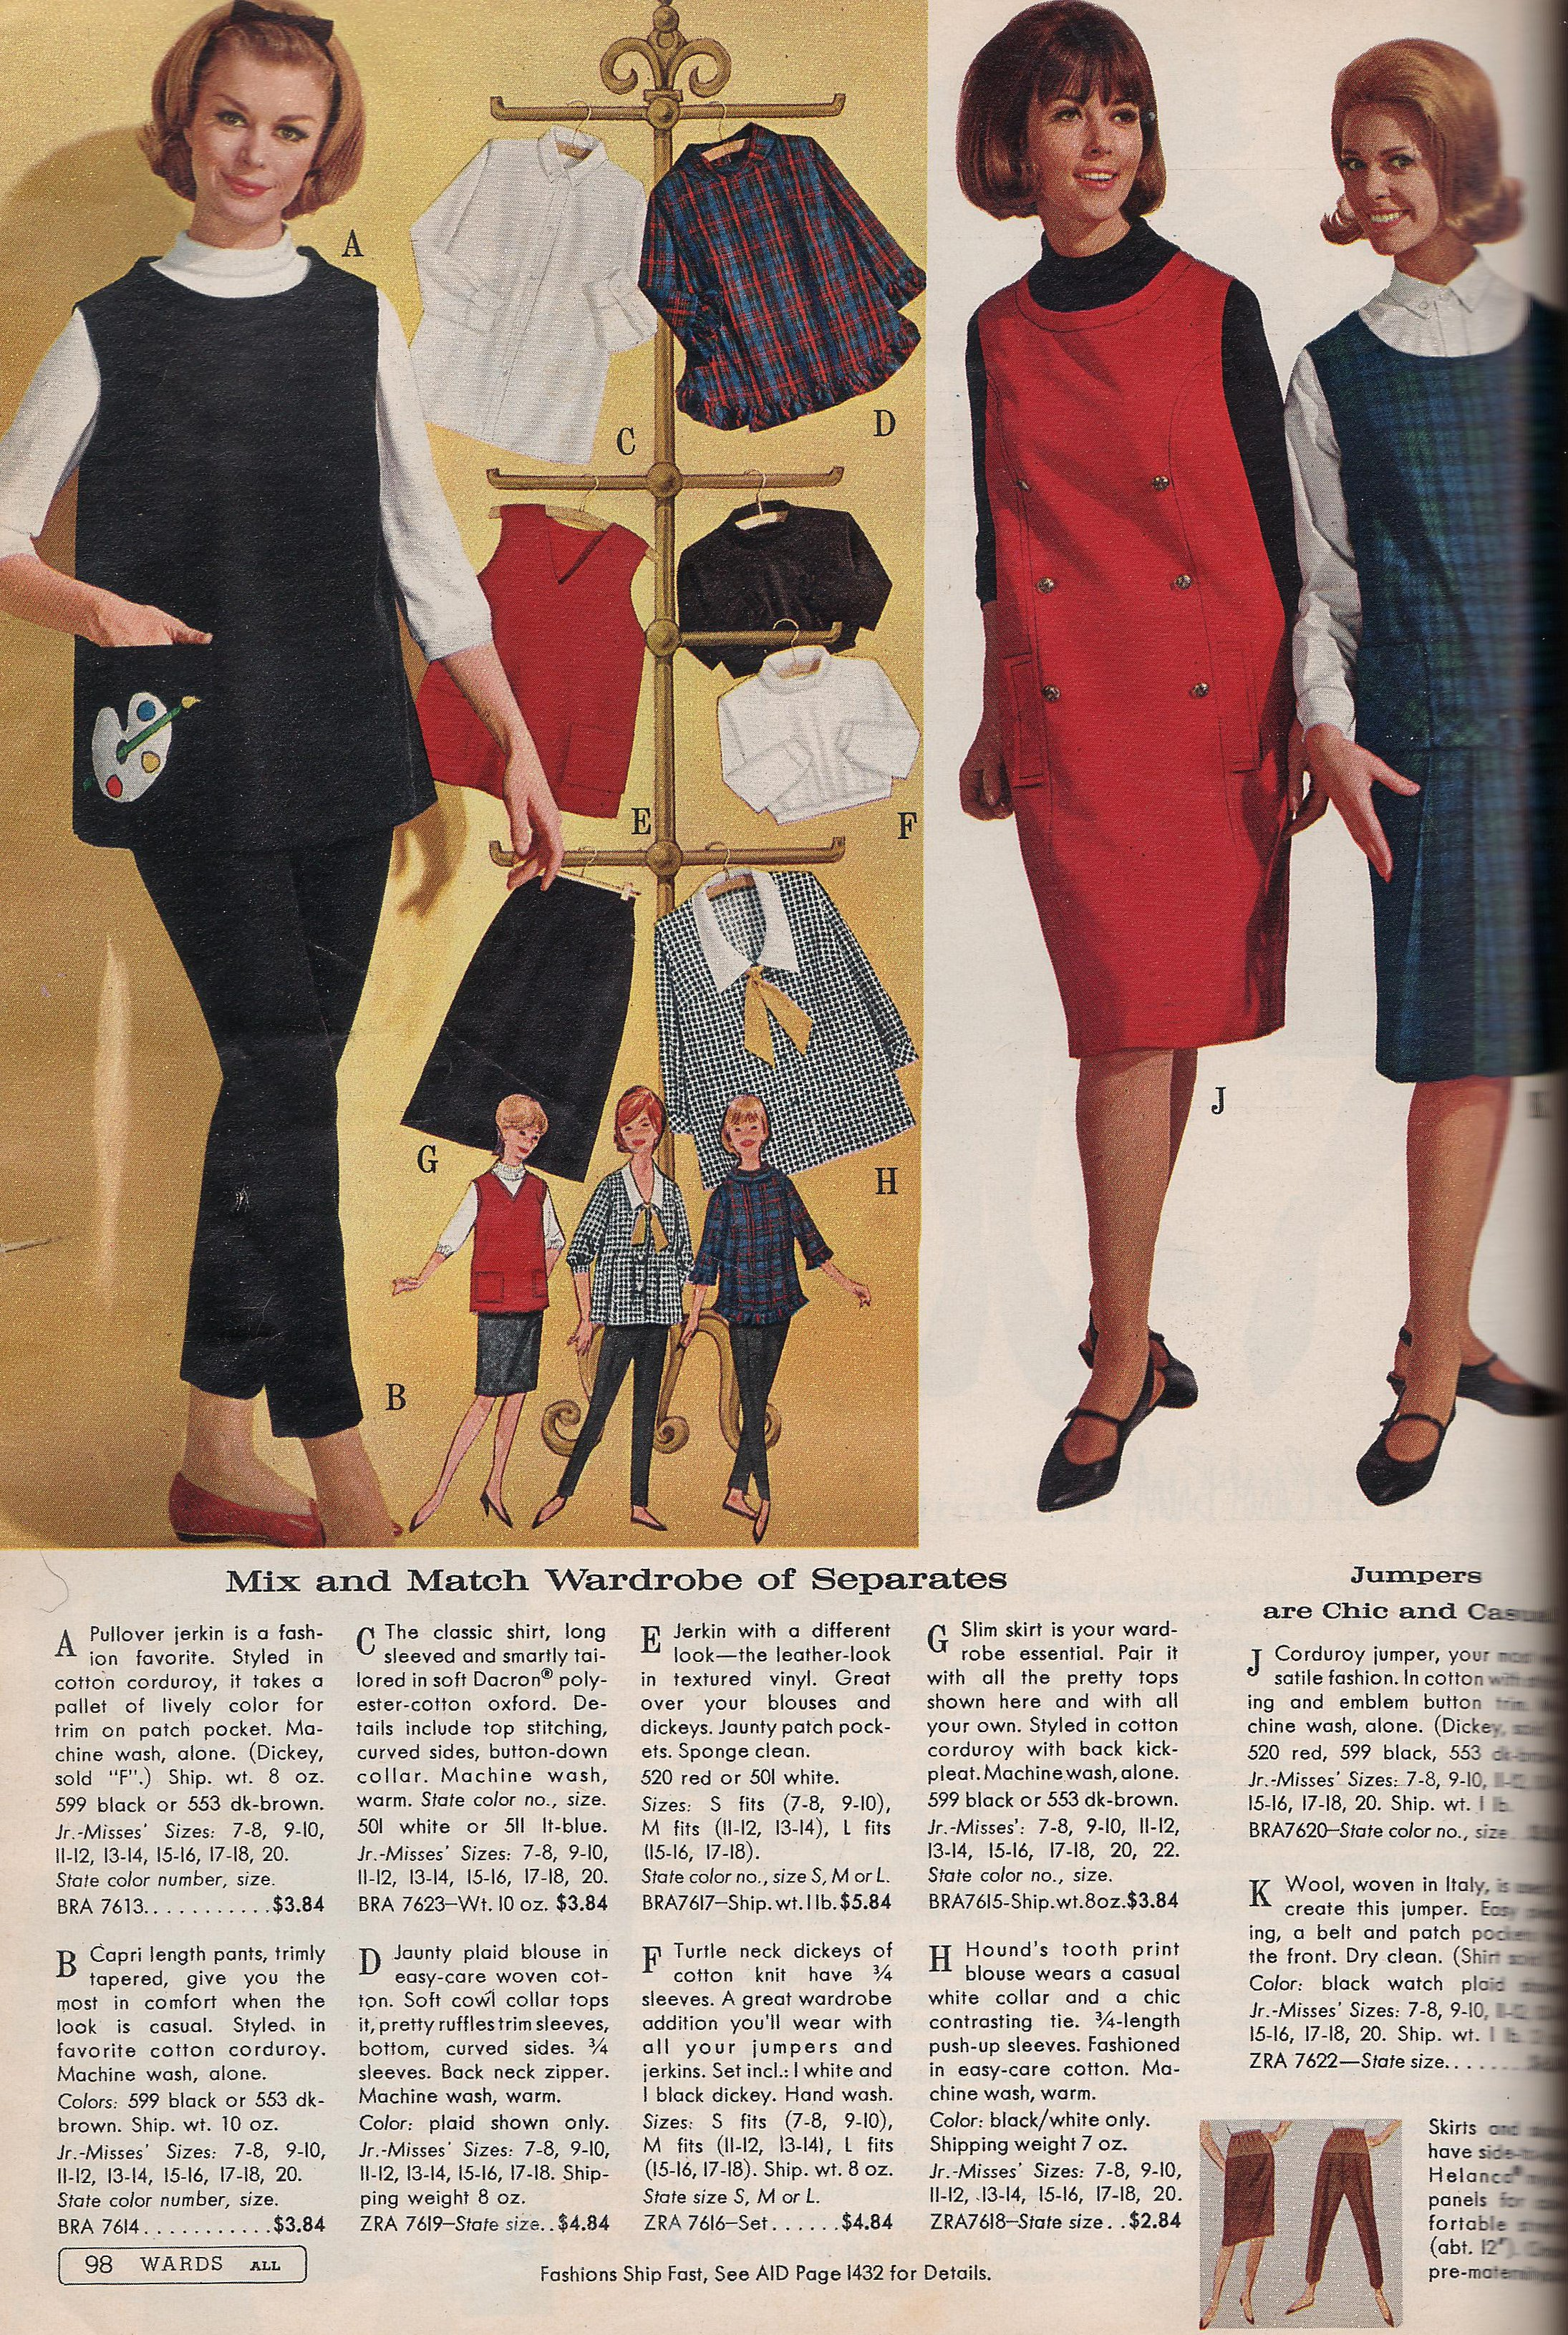 Maternity Clothes, 1960.